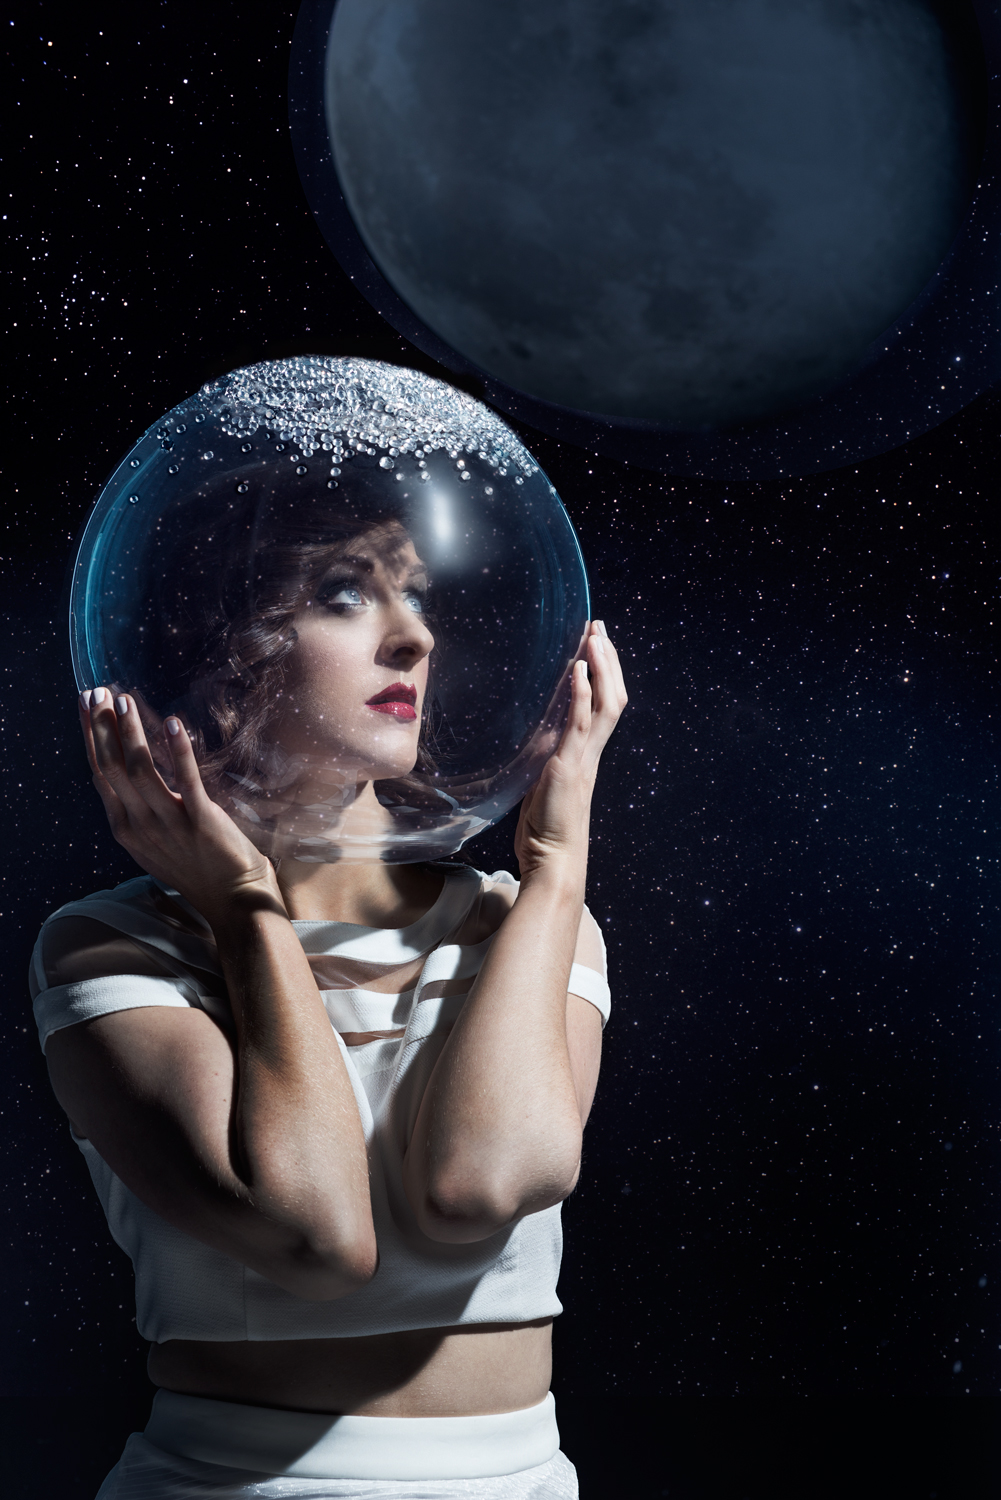 Gillian Cosgriff To The Moon & Back ImageByLachlanWoodsPhotography-WEB-1500px-72dpi.jpg